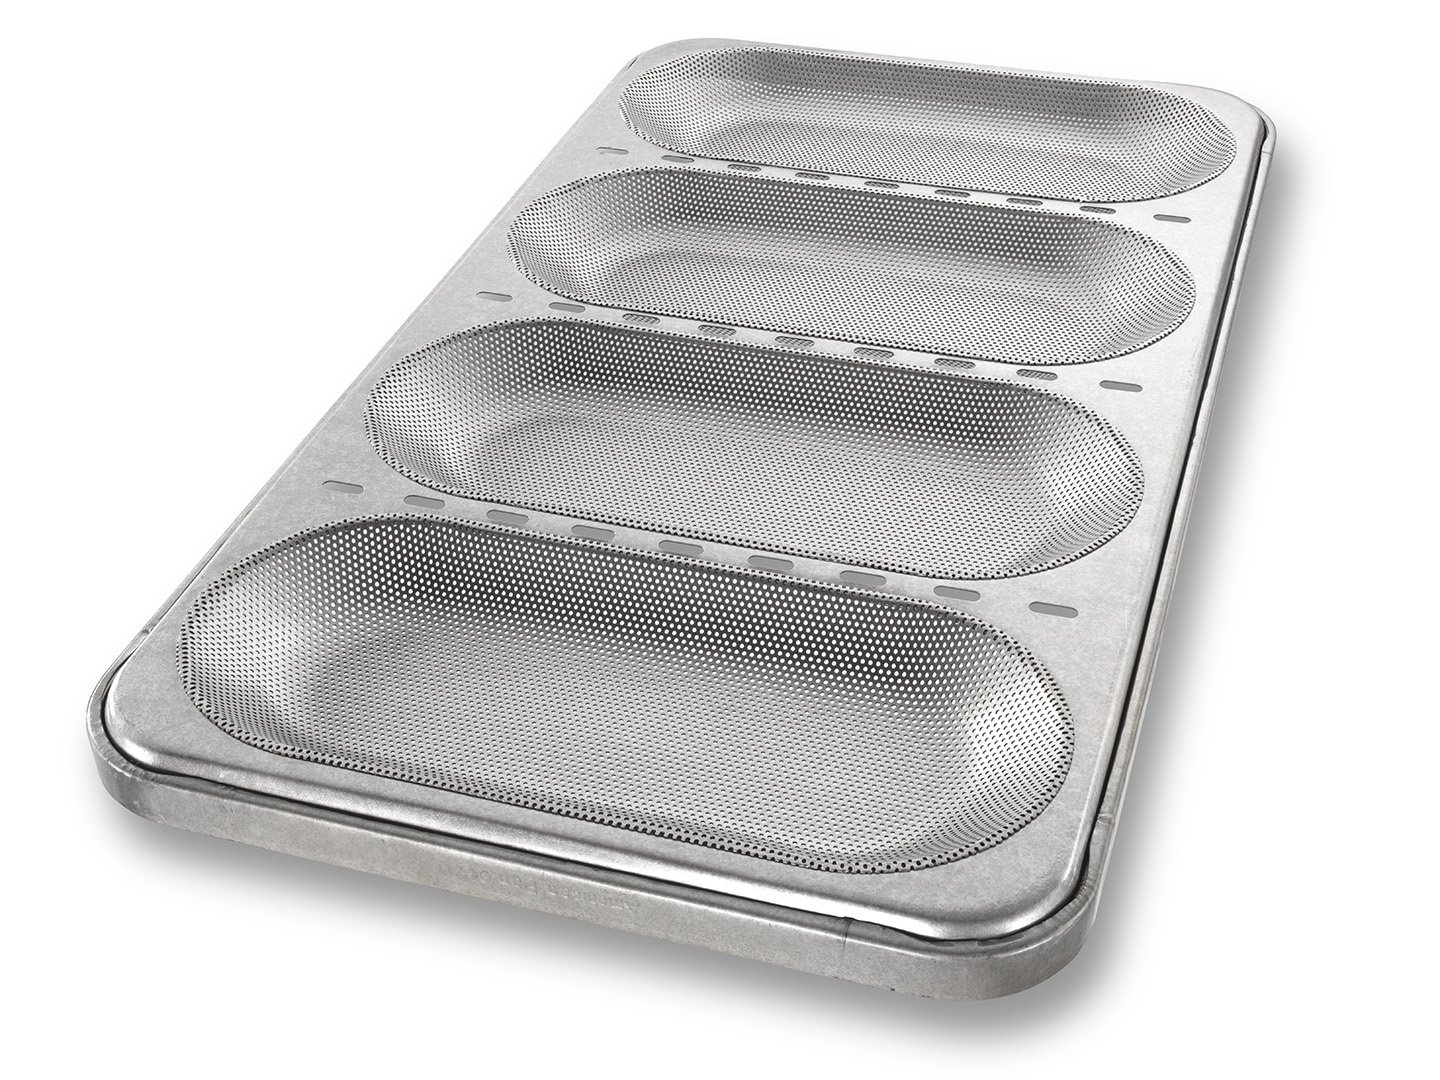 Artisan Bread Loaf Tray - AMERICOAT® Coating